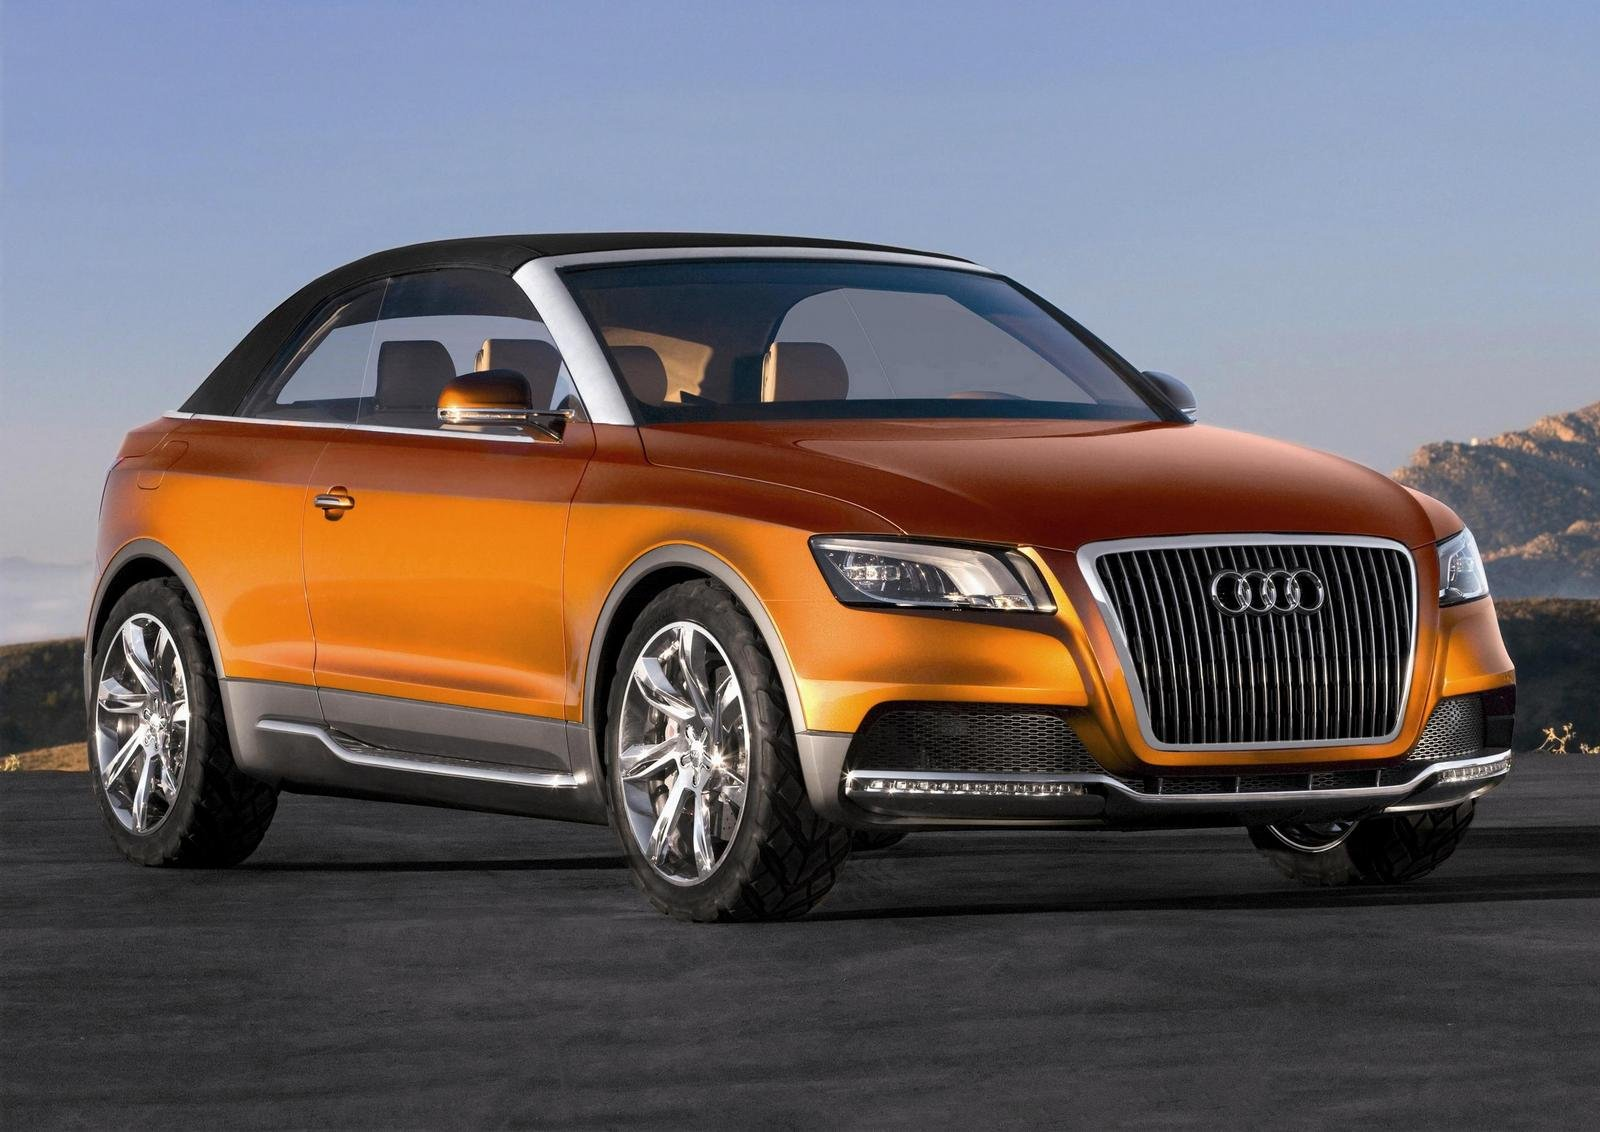 http://pictures.topspeed.com/IMG/crop/200711/audi-cross-cabriolet-12_1600x0w.jpg